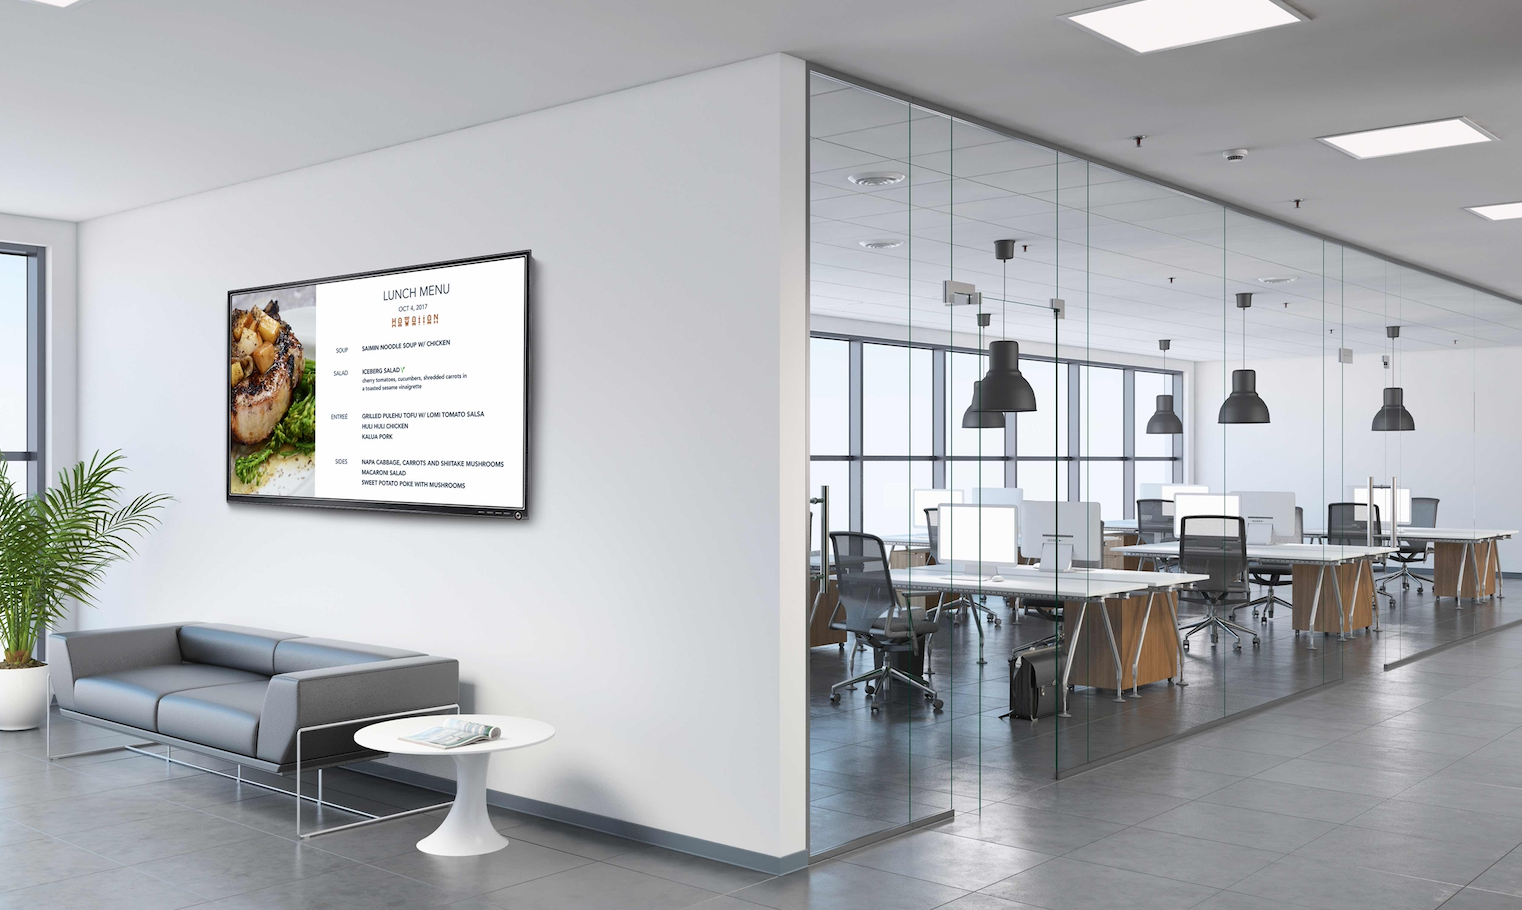 New Zoom Rooms Features: Digital Signage & More Now Available